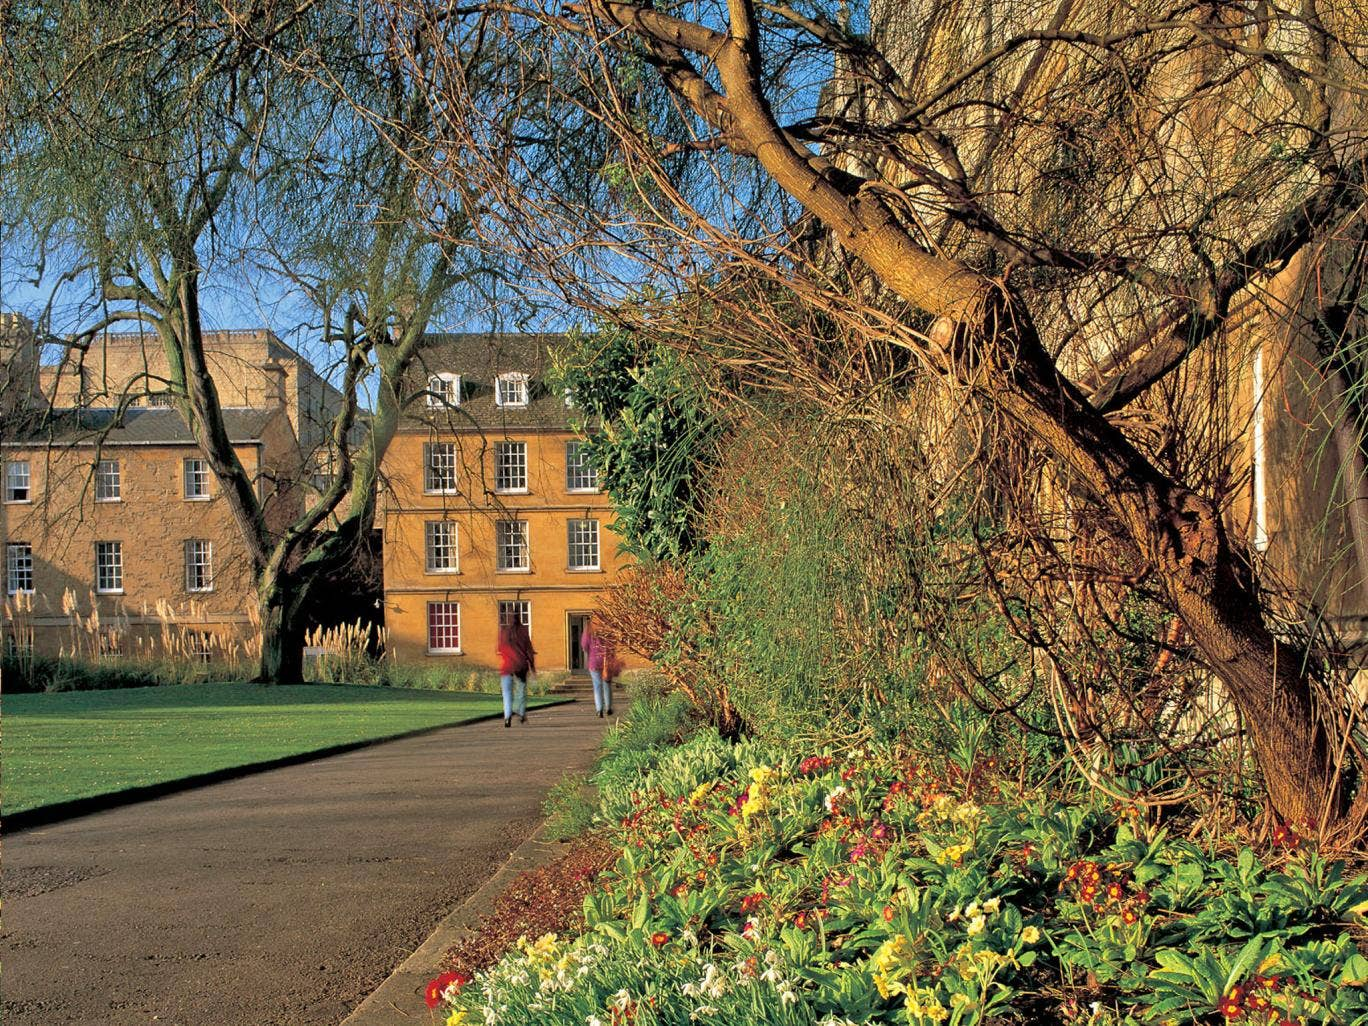 Wadham College, Oxford, where the skeleton was found